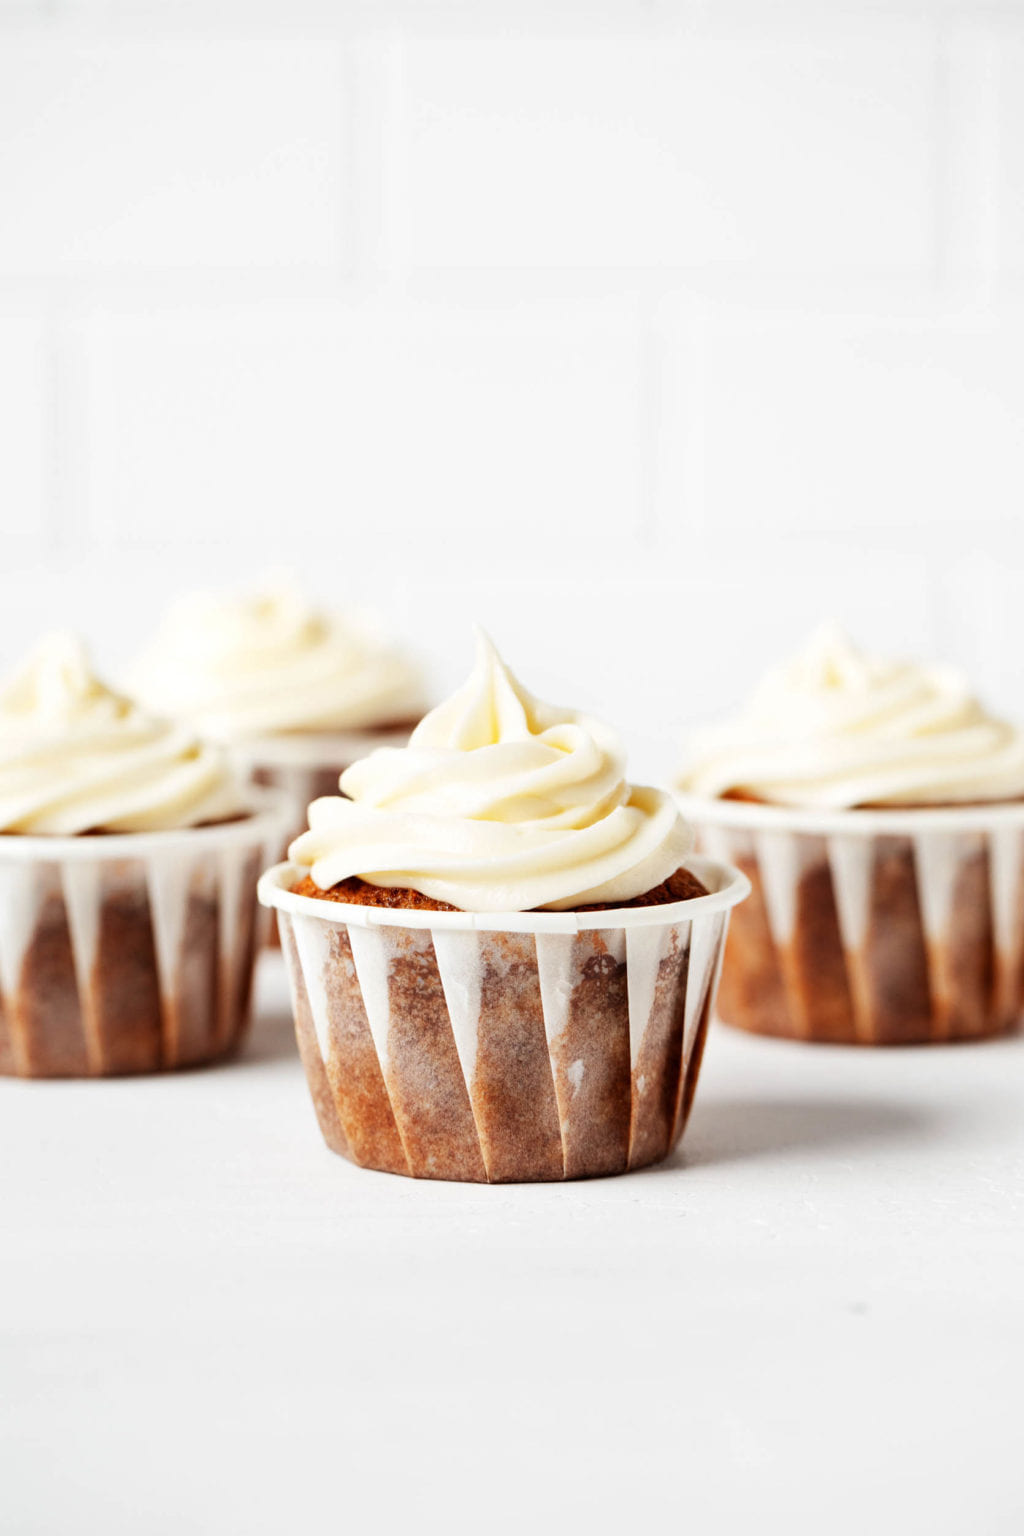 On a bright background, frosted vegan carrot cake cupcakes are lined up in a row.